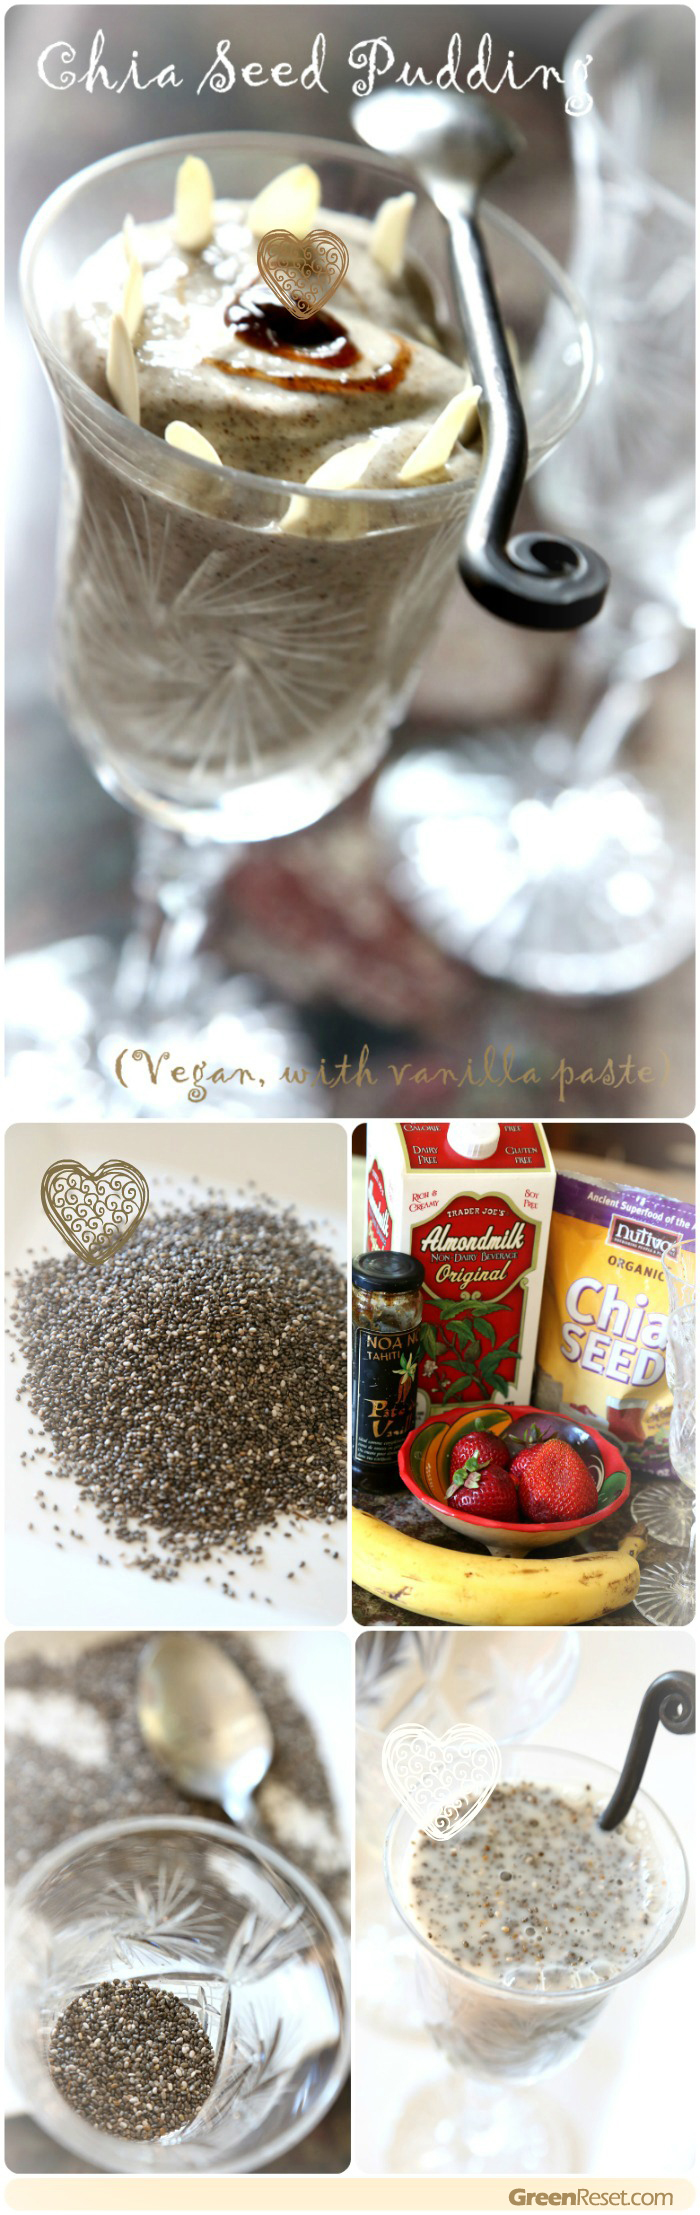 chia-seed-pudding12d